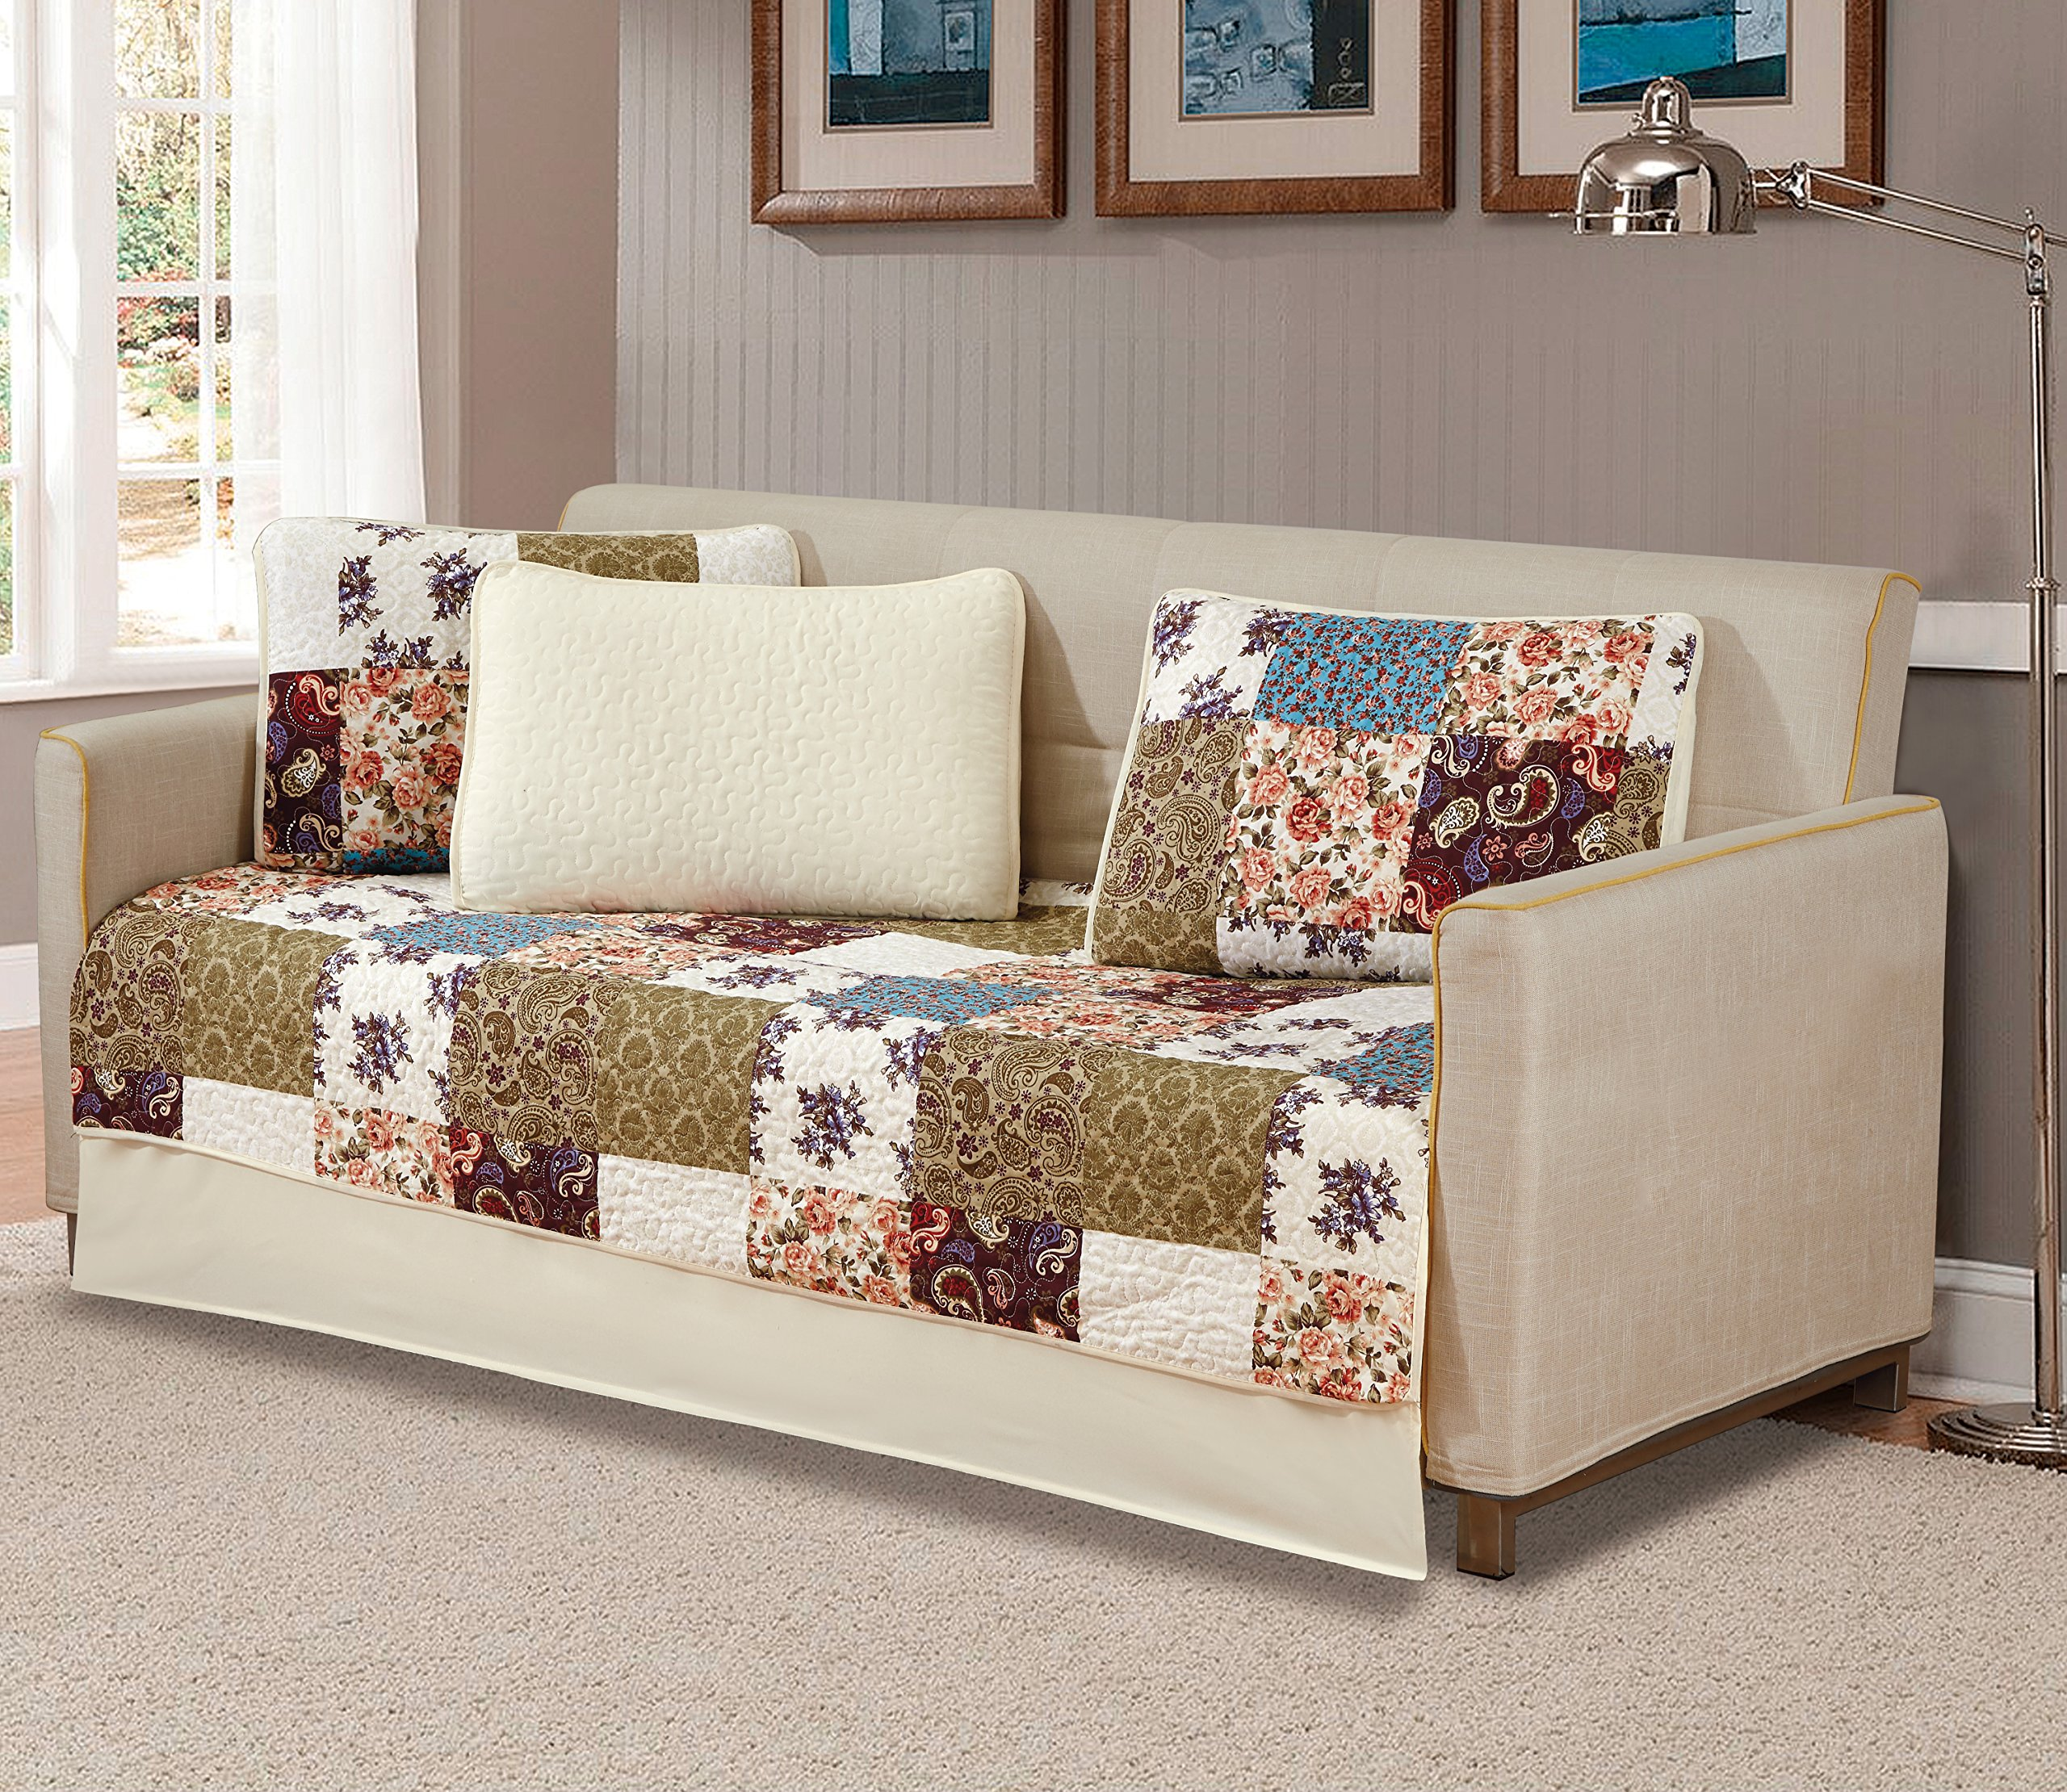 Mk Home 5 Pc Daybed Bedspread Quilted Print Floral Beige Burgundy Purple Blue Taupe Over Size New # Milano